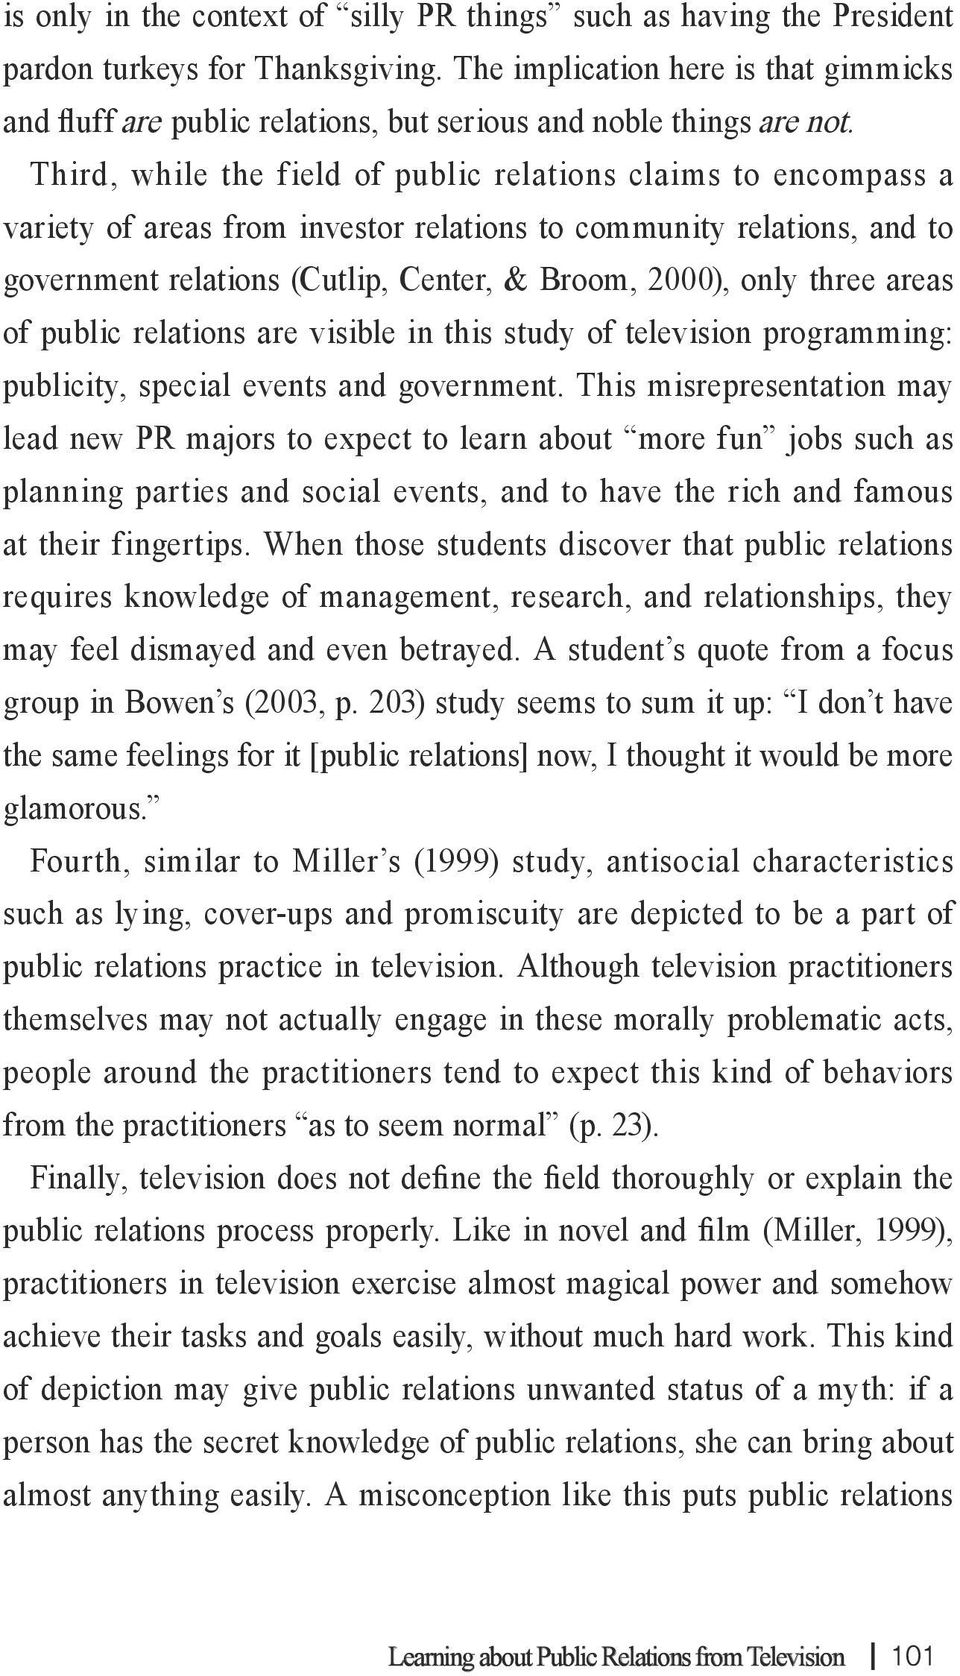 Third, while the field of public relations claims to encompass a variety of areas from investor relations to community relations, and to government relations (Cutlip, Center, & Broom, 2000), only